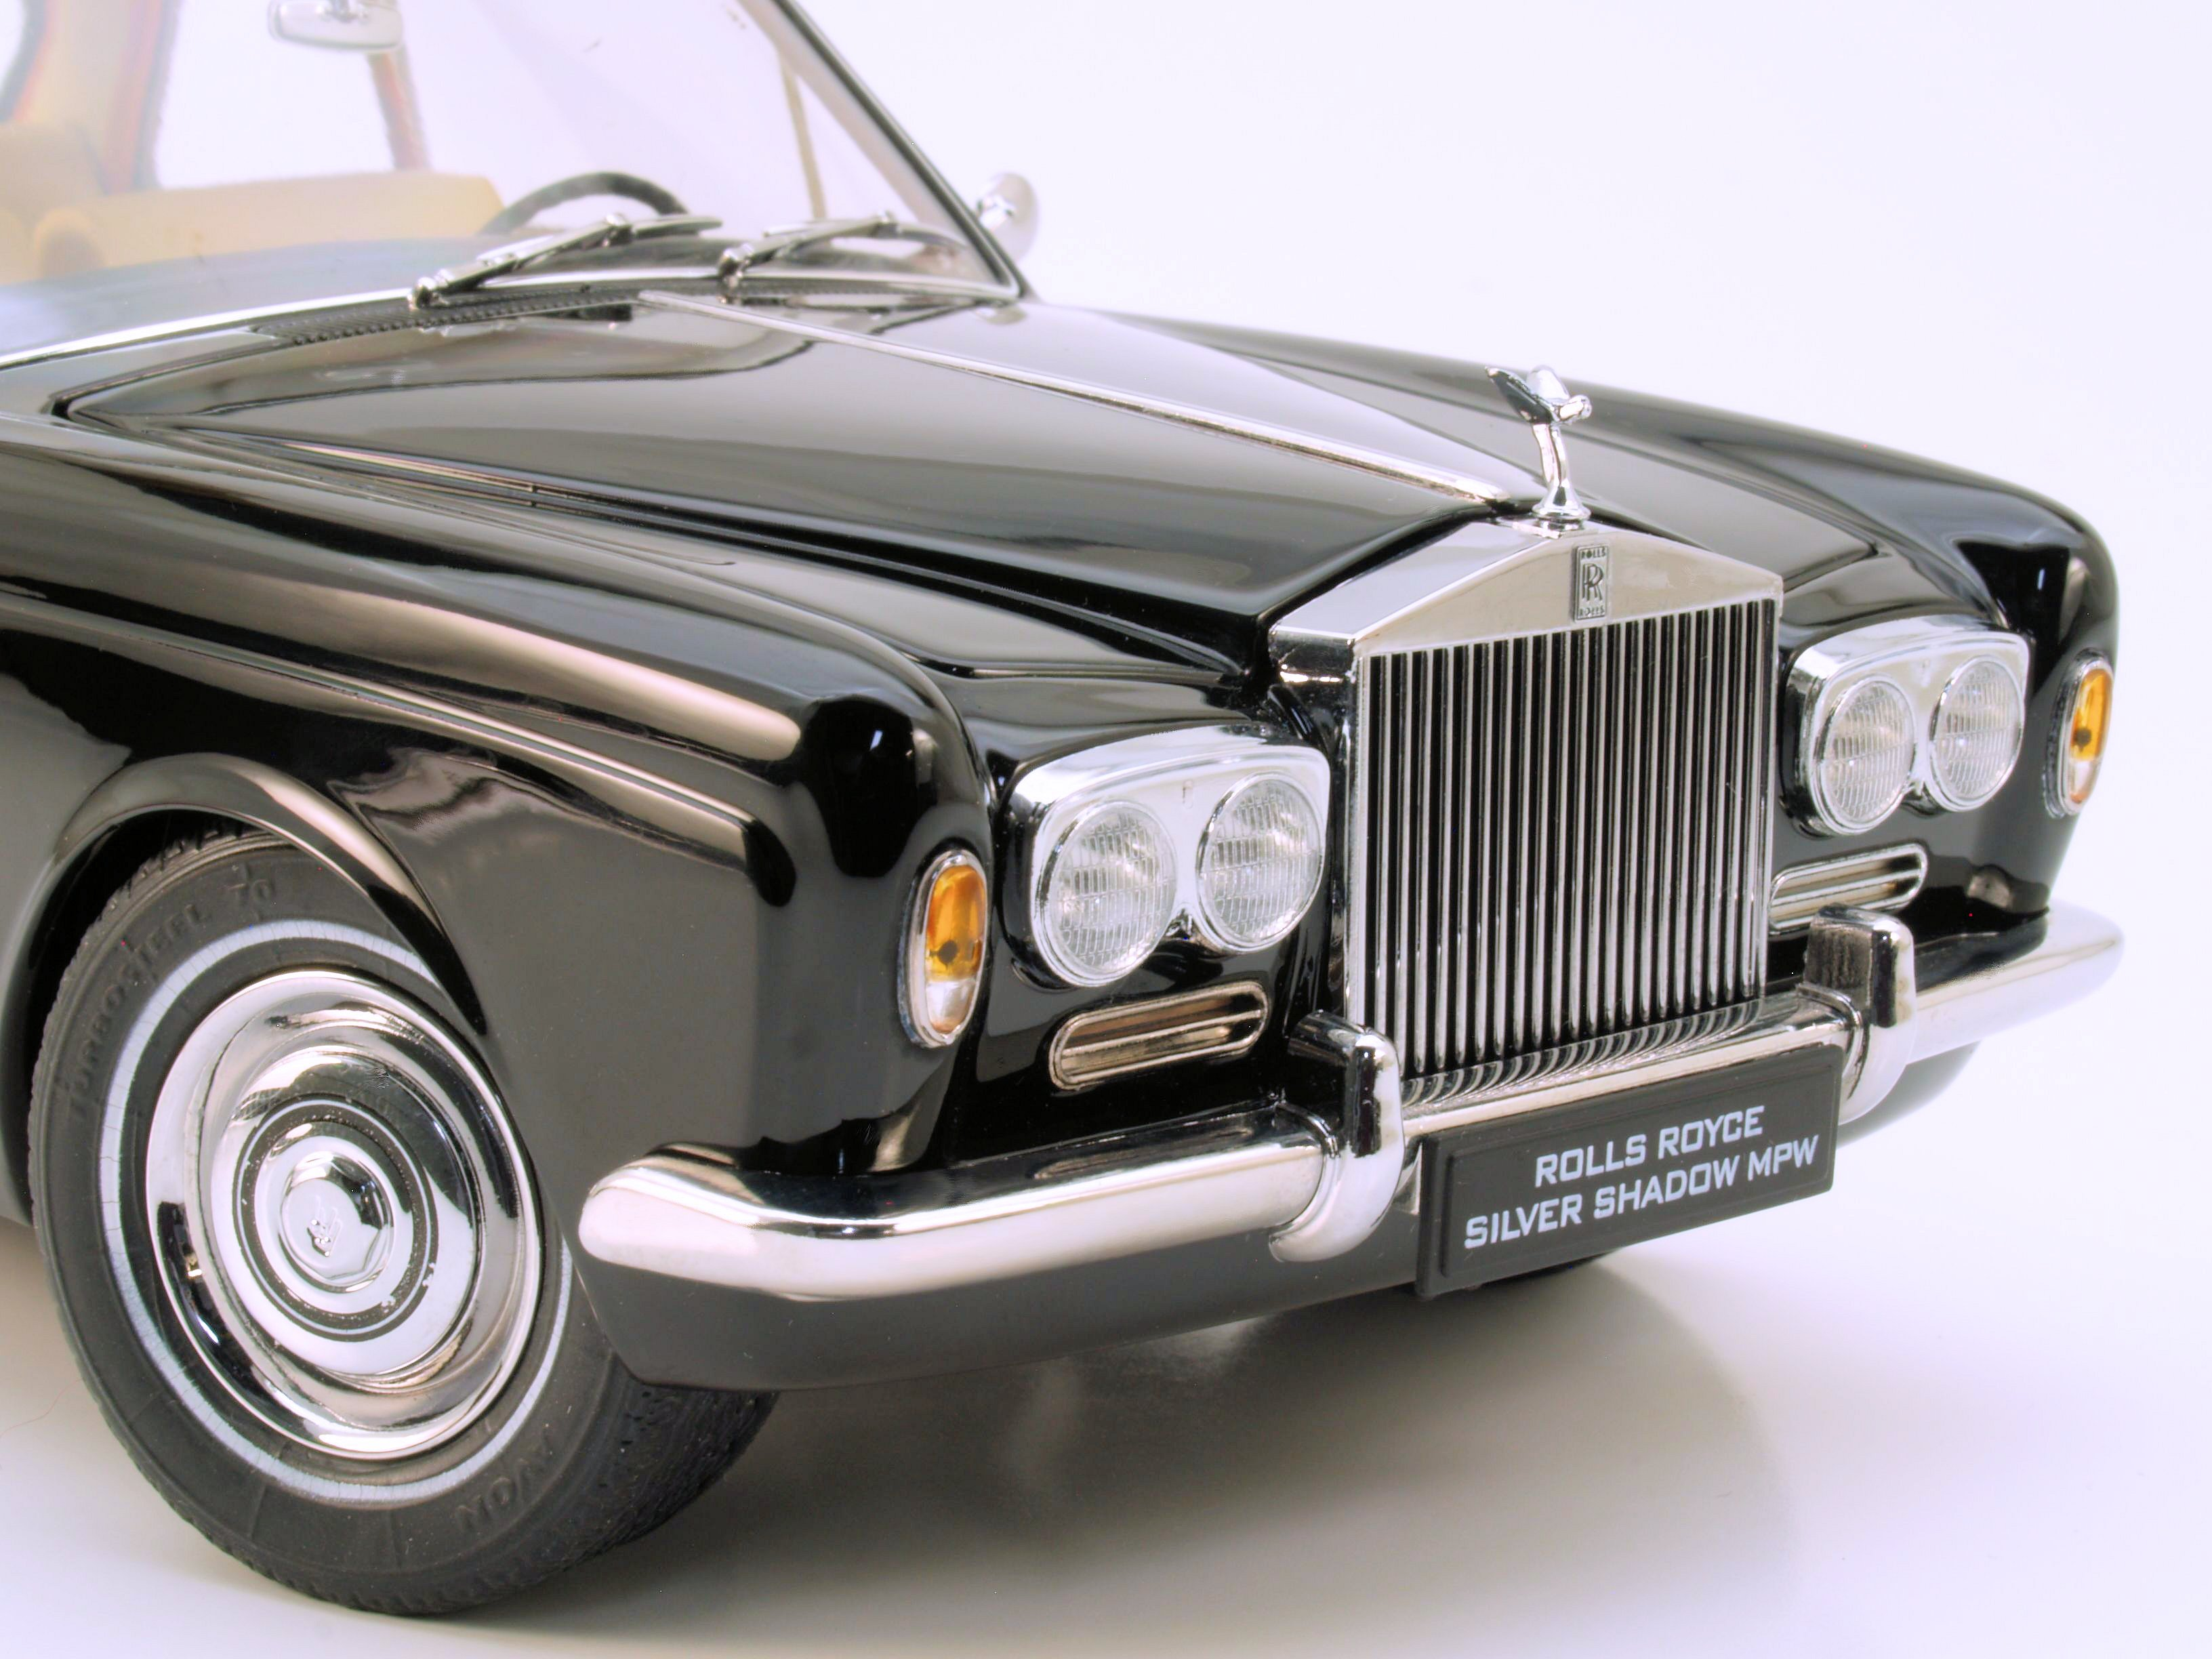 Bonus Photos / Snap Review: Paragon 1:18 1968 Rolls-Royce Mulliner Park Ward Coupe